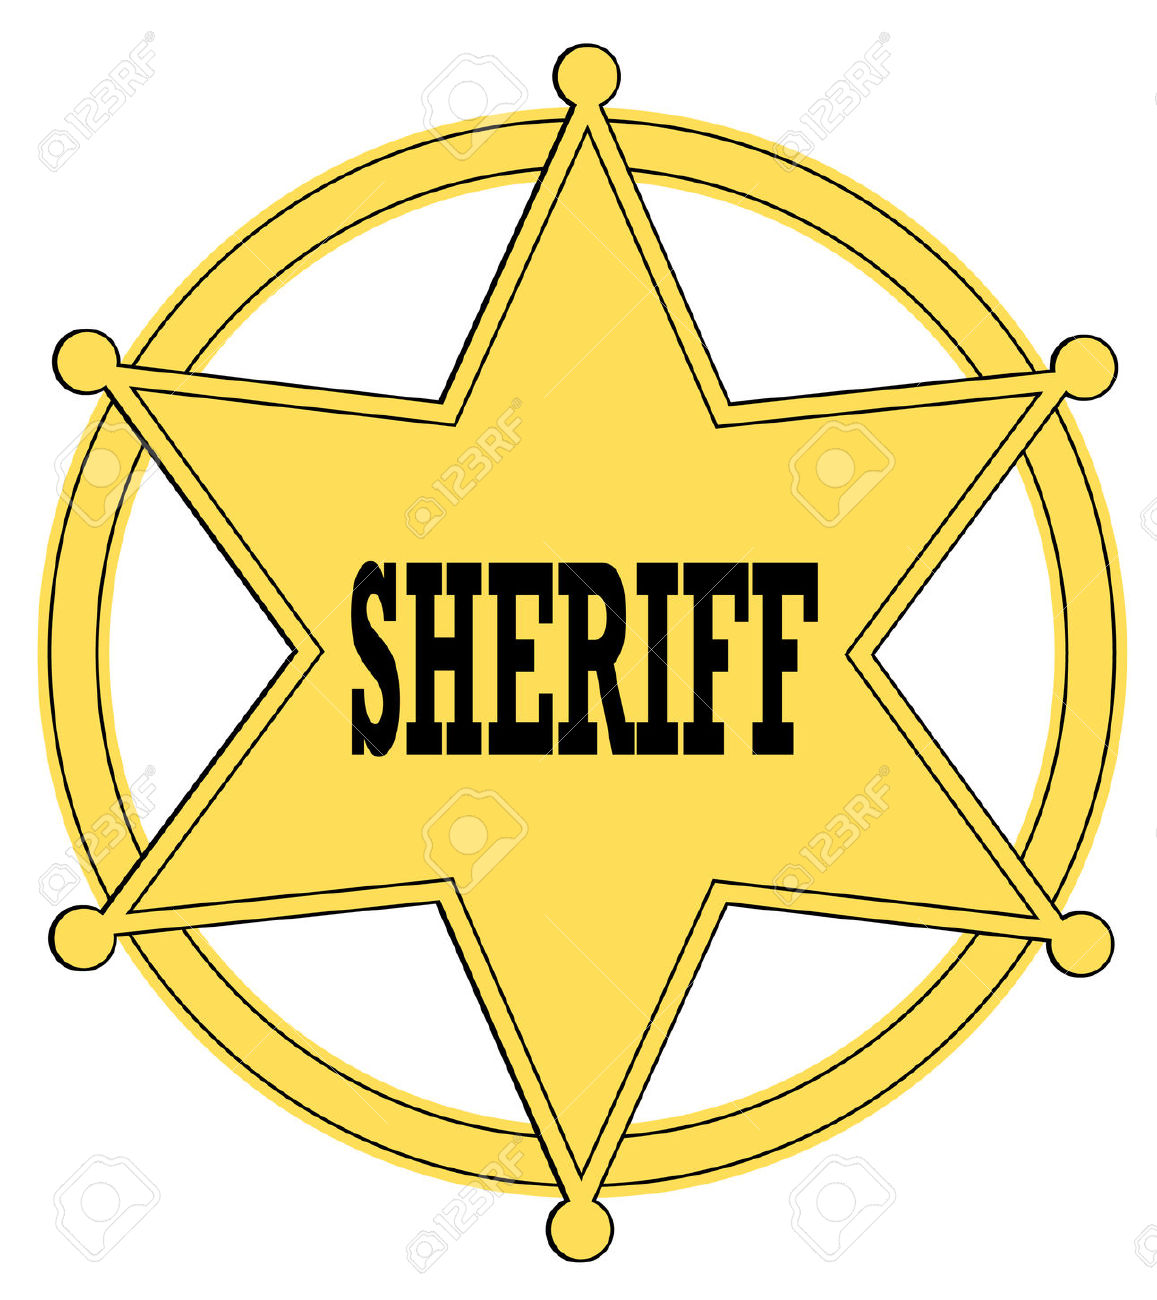 sheriff badge silhouette at getdrawings com free for personal use rh getdrawings com old west sheriff badge clipart old west sheriff badge clipart